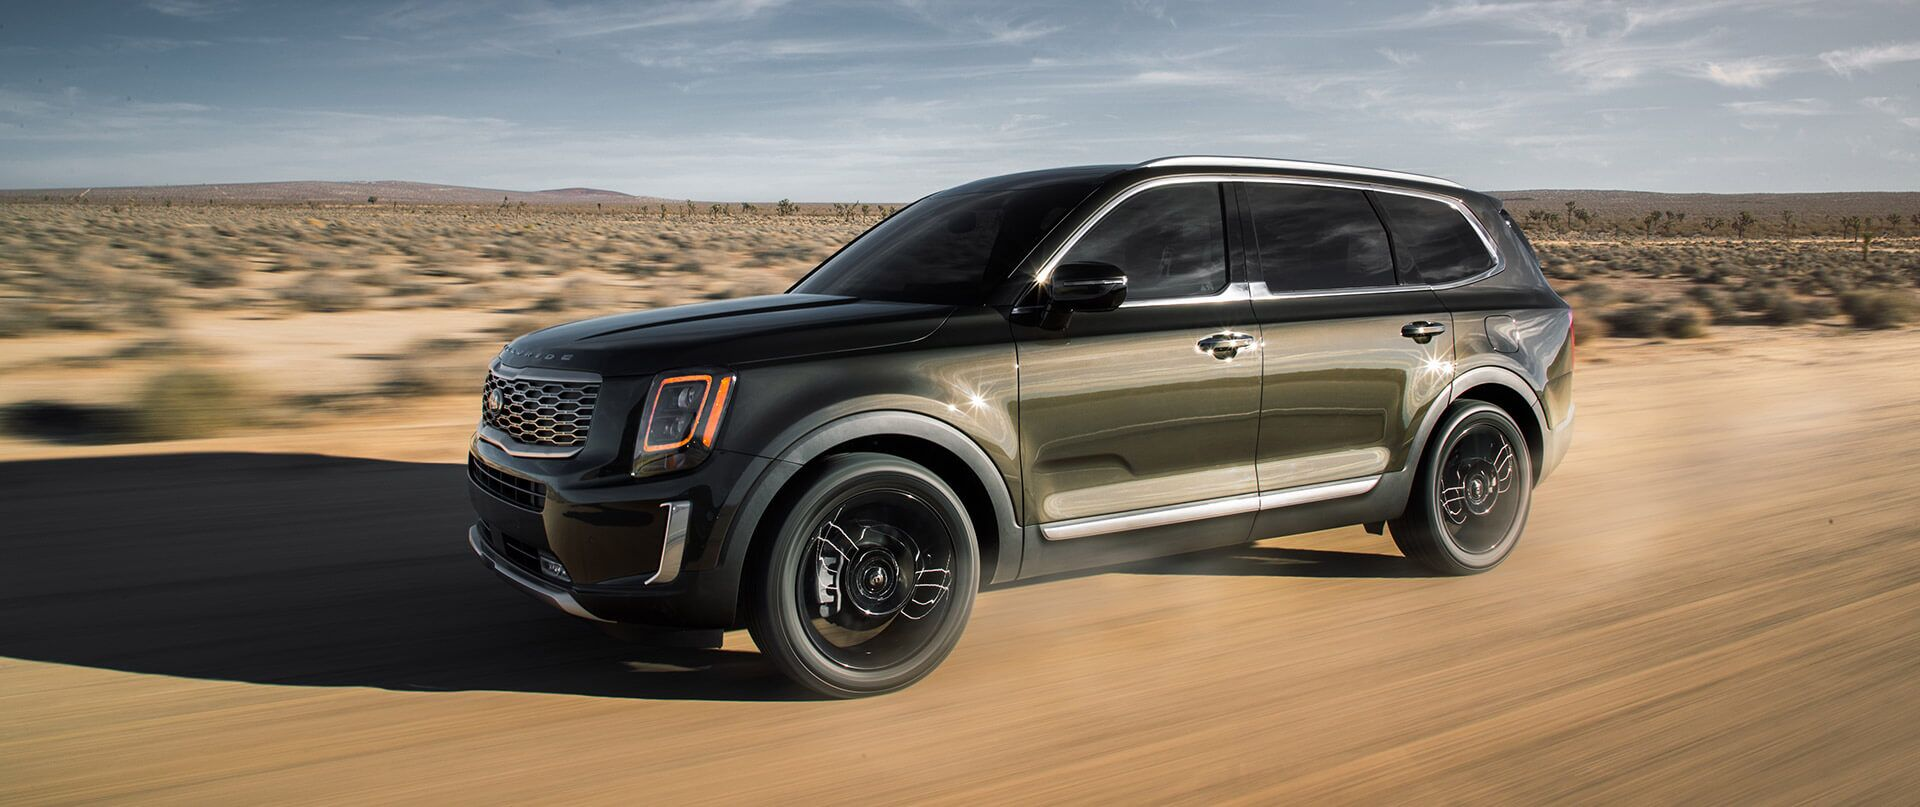 2020 Kia Telluride in Crystal River, FL